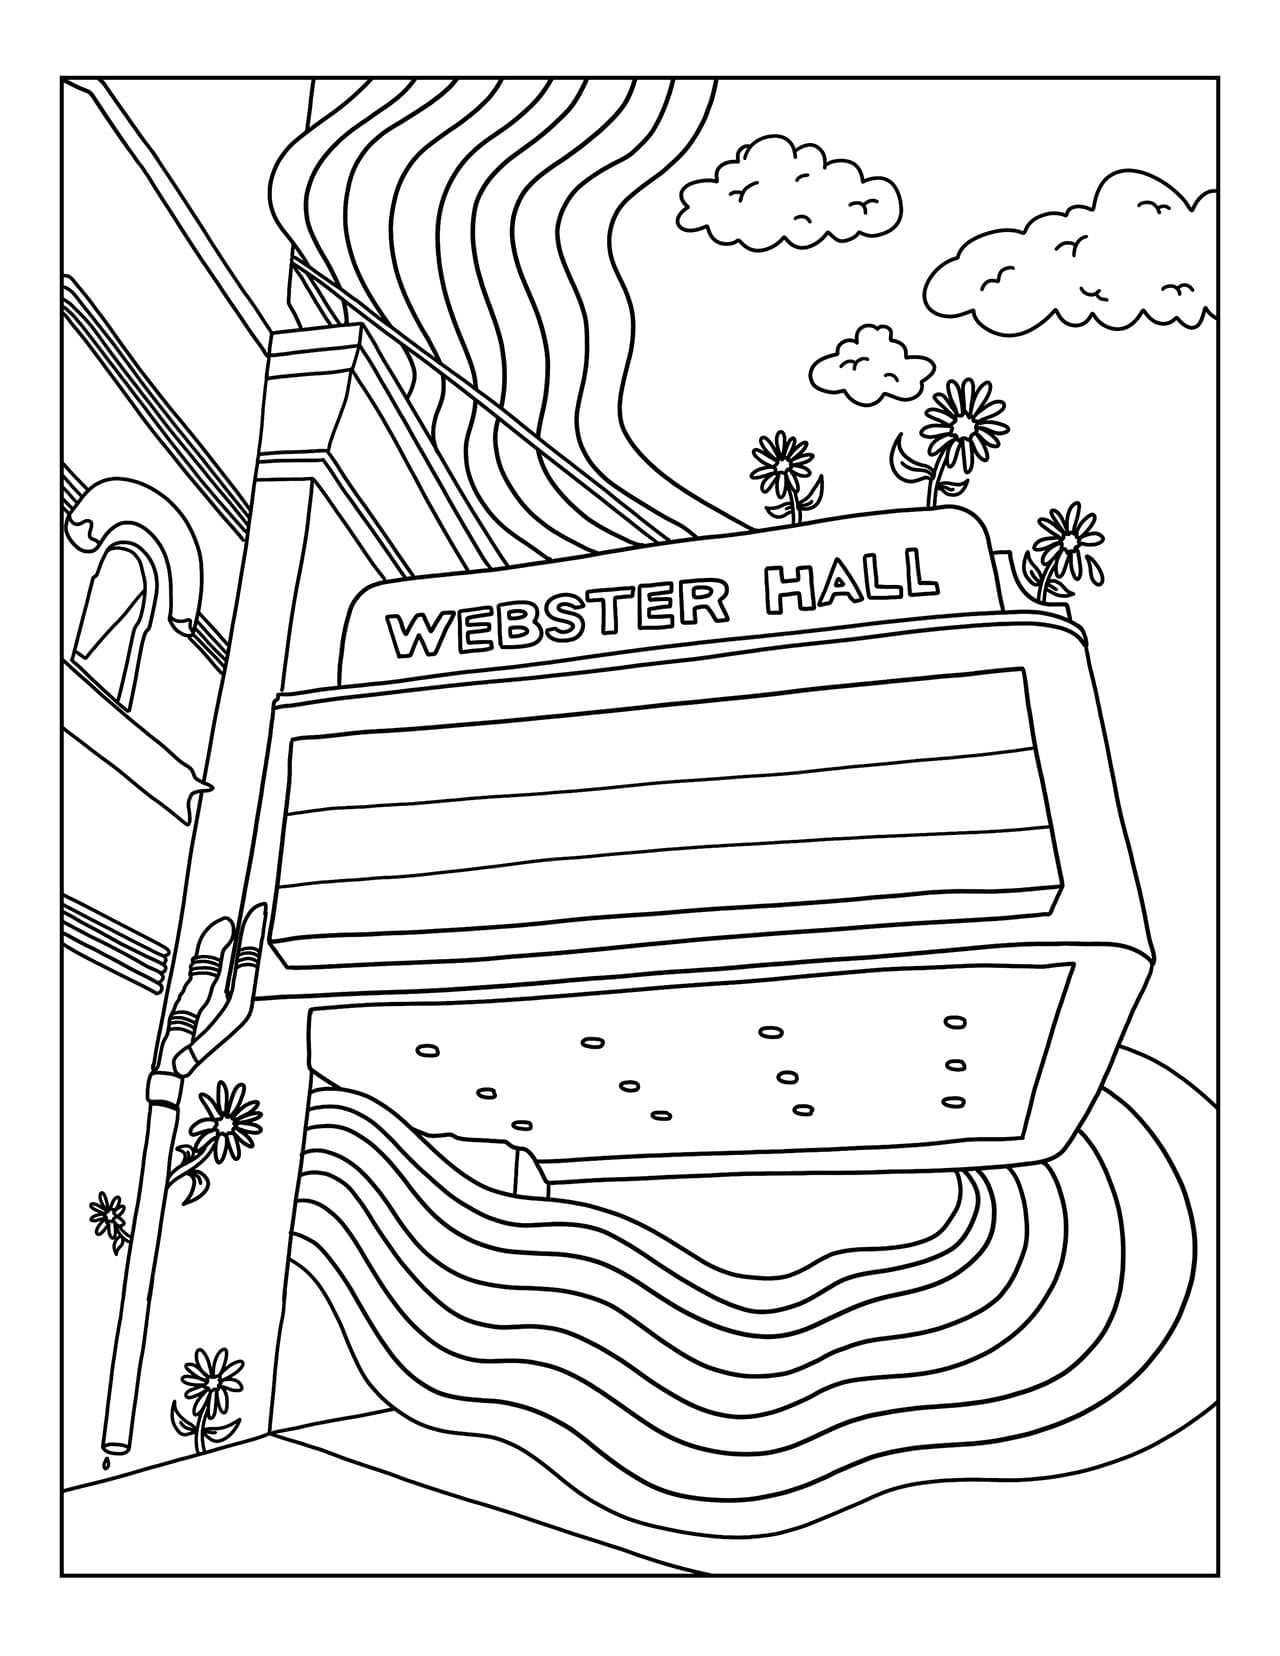 Free Coloring Pages of the Bowery Ballroom